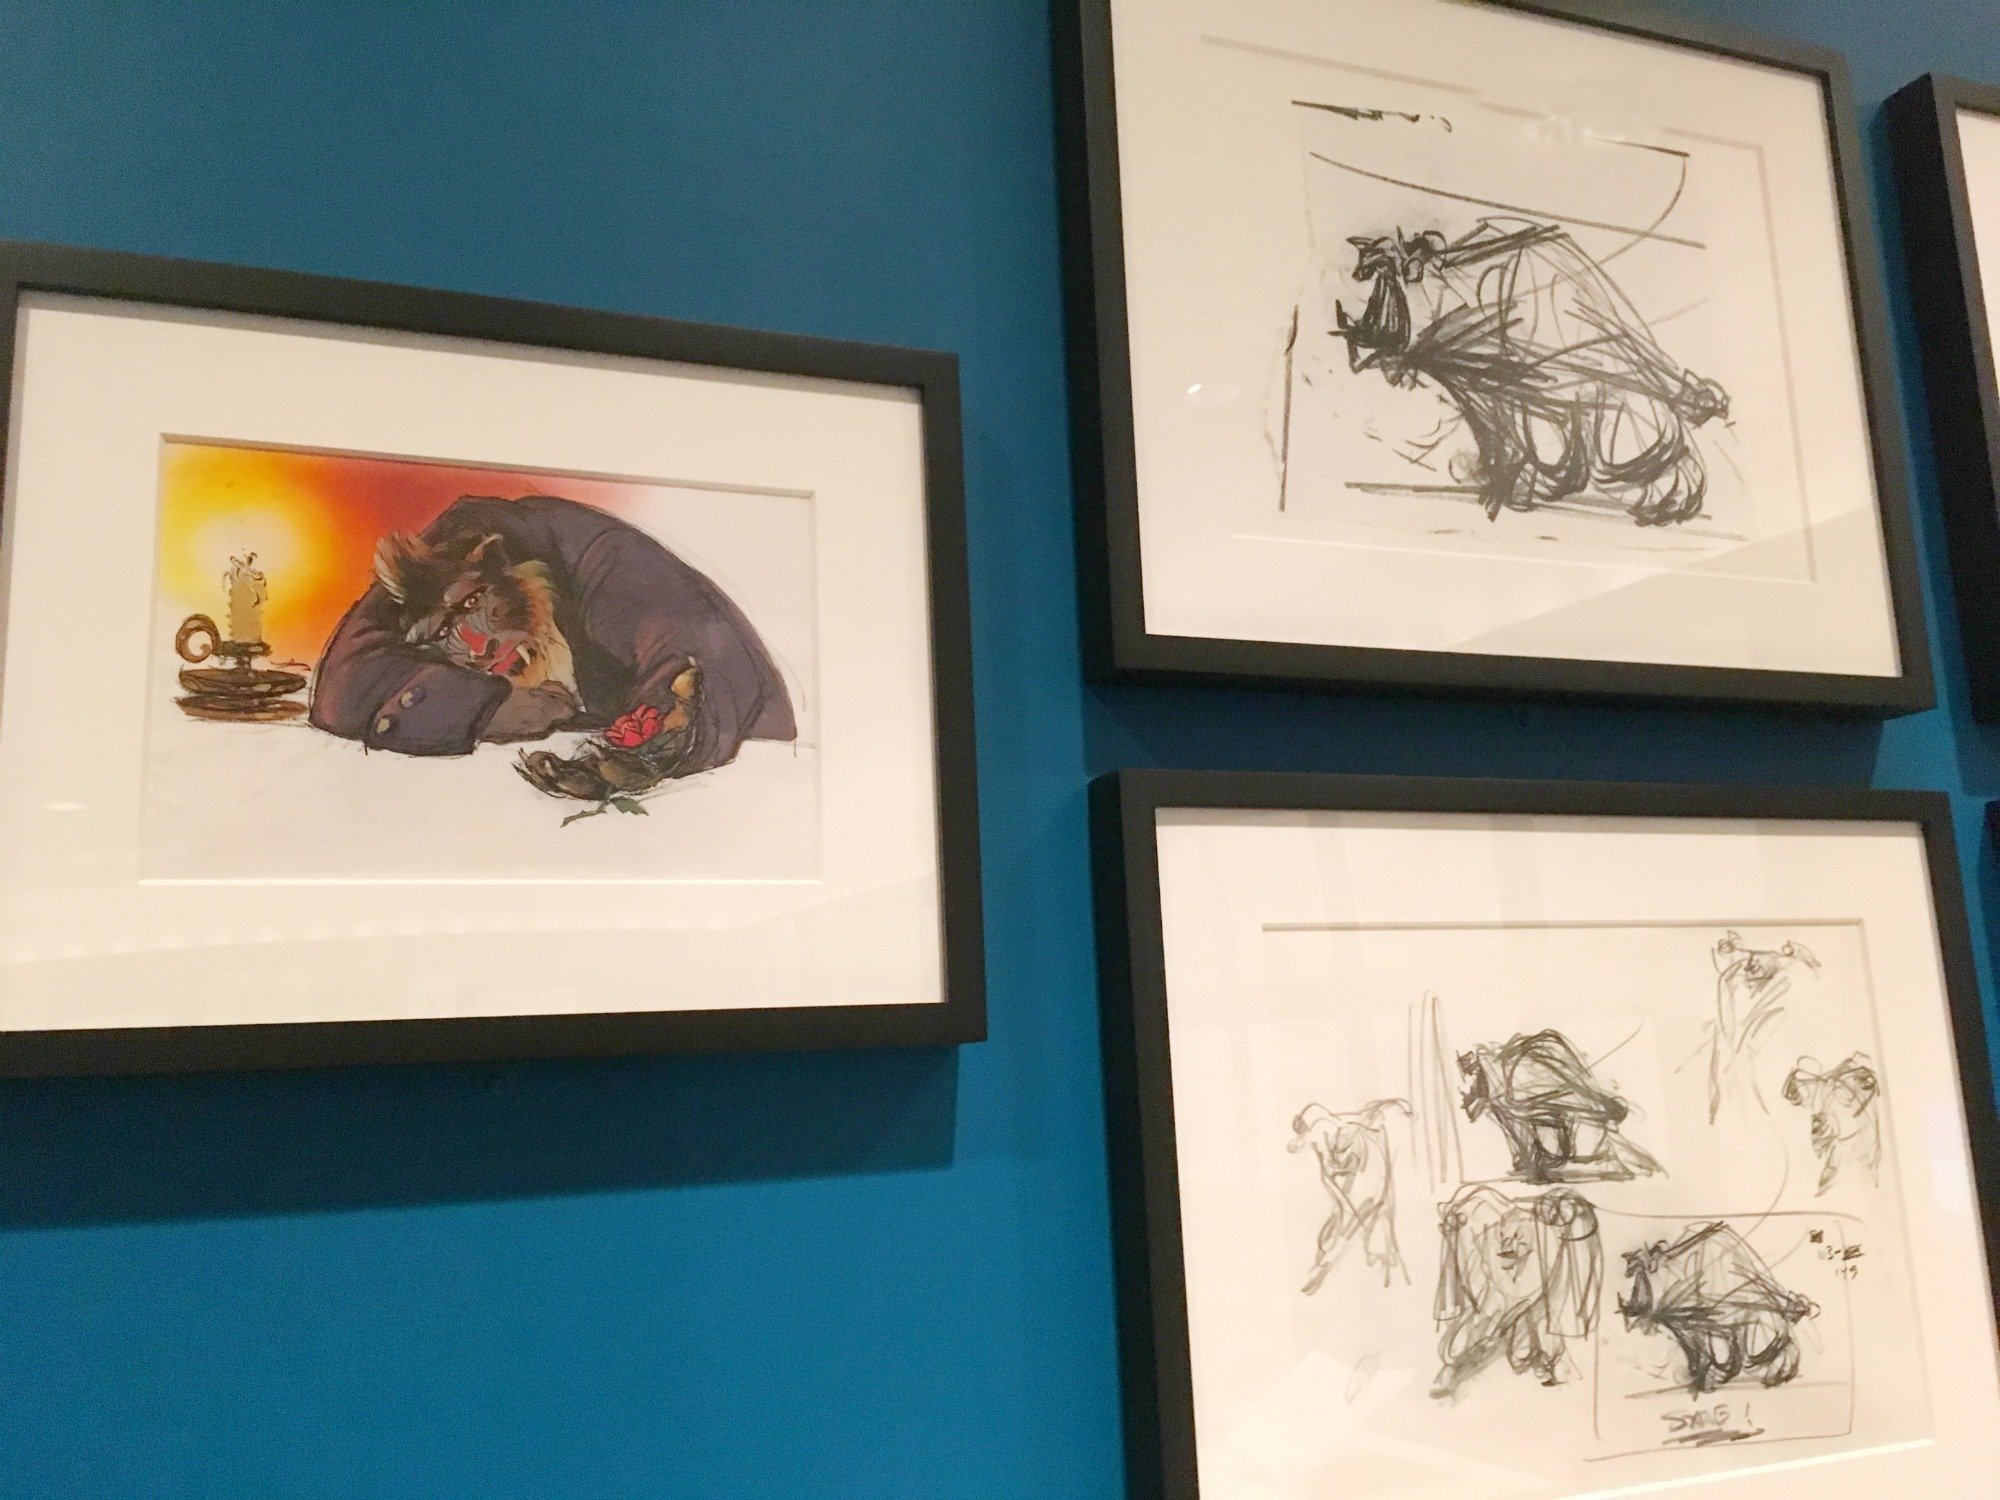 Artwork of Glen Keane, Walt Disney Family Museum